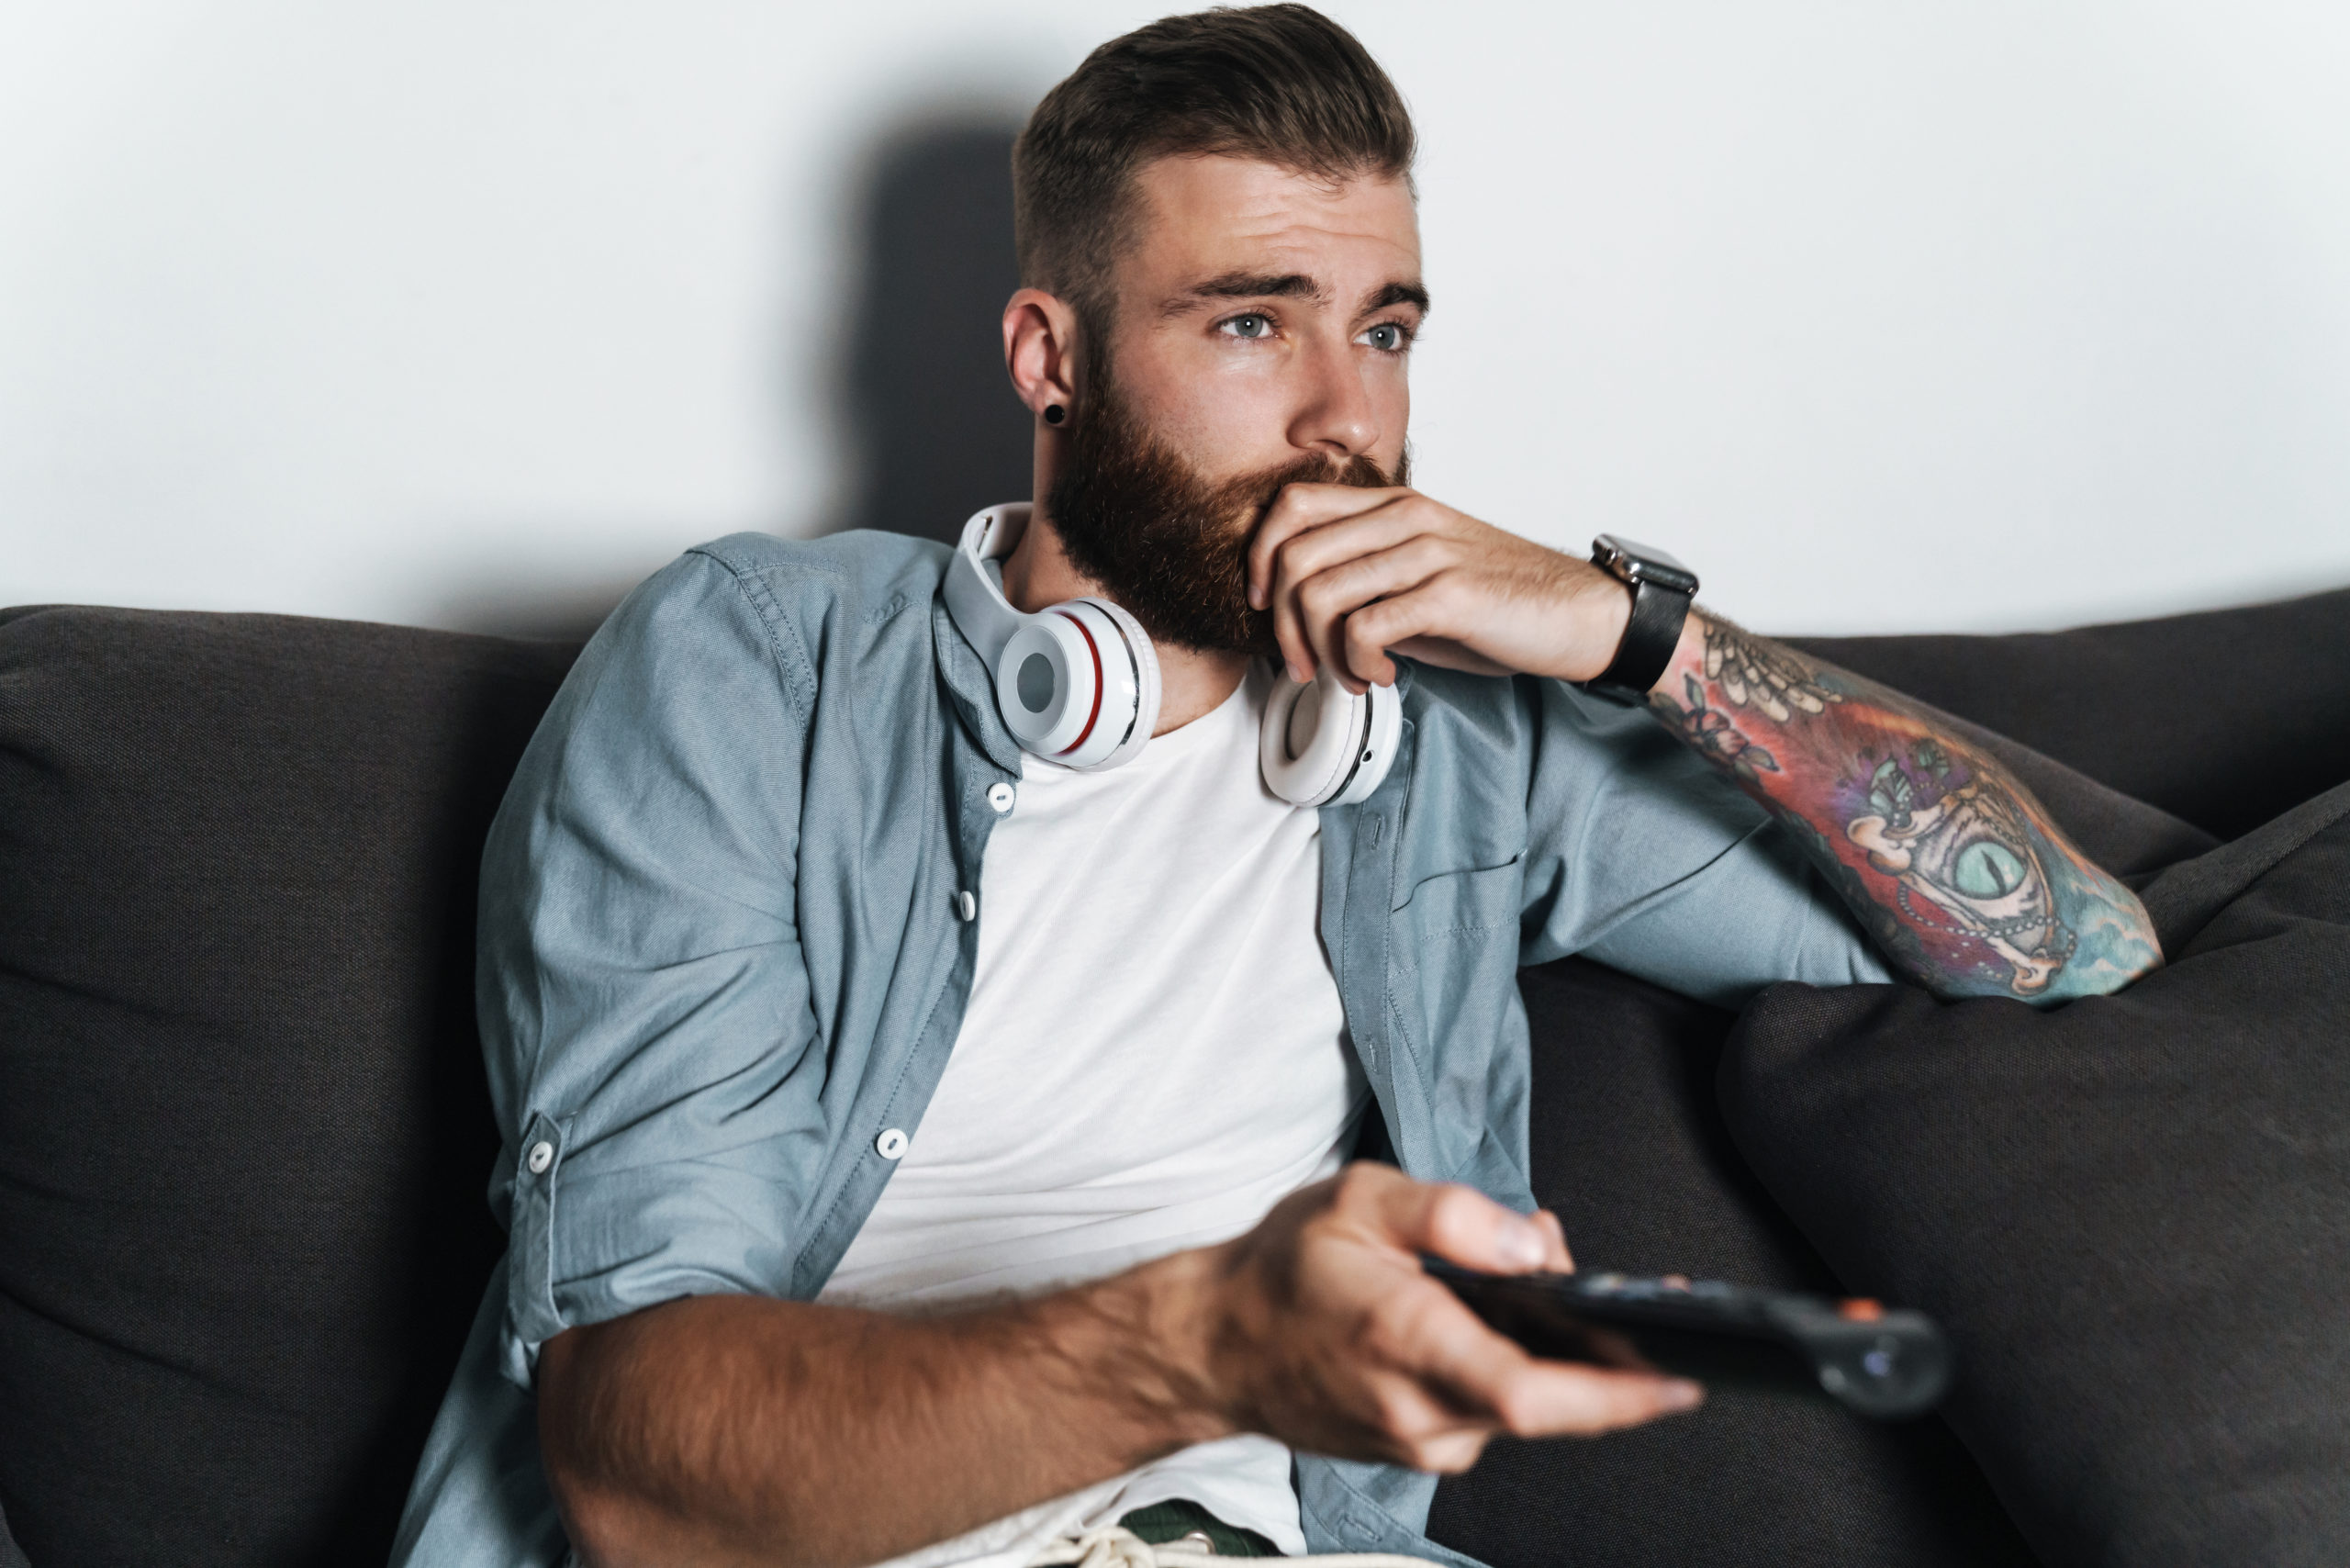 https://elements.envato.com/attractive-young-bearded-man-relaxing-on-a-couch-a-P4KWKYE